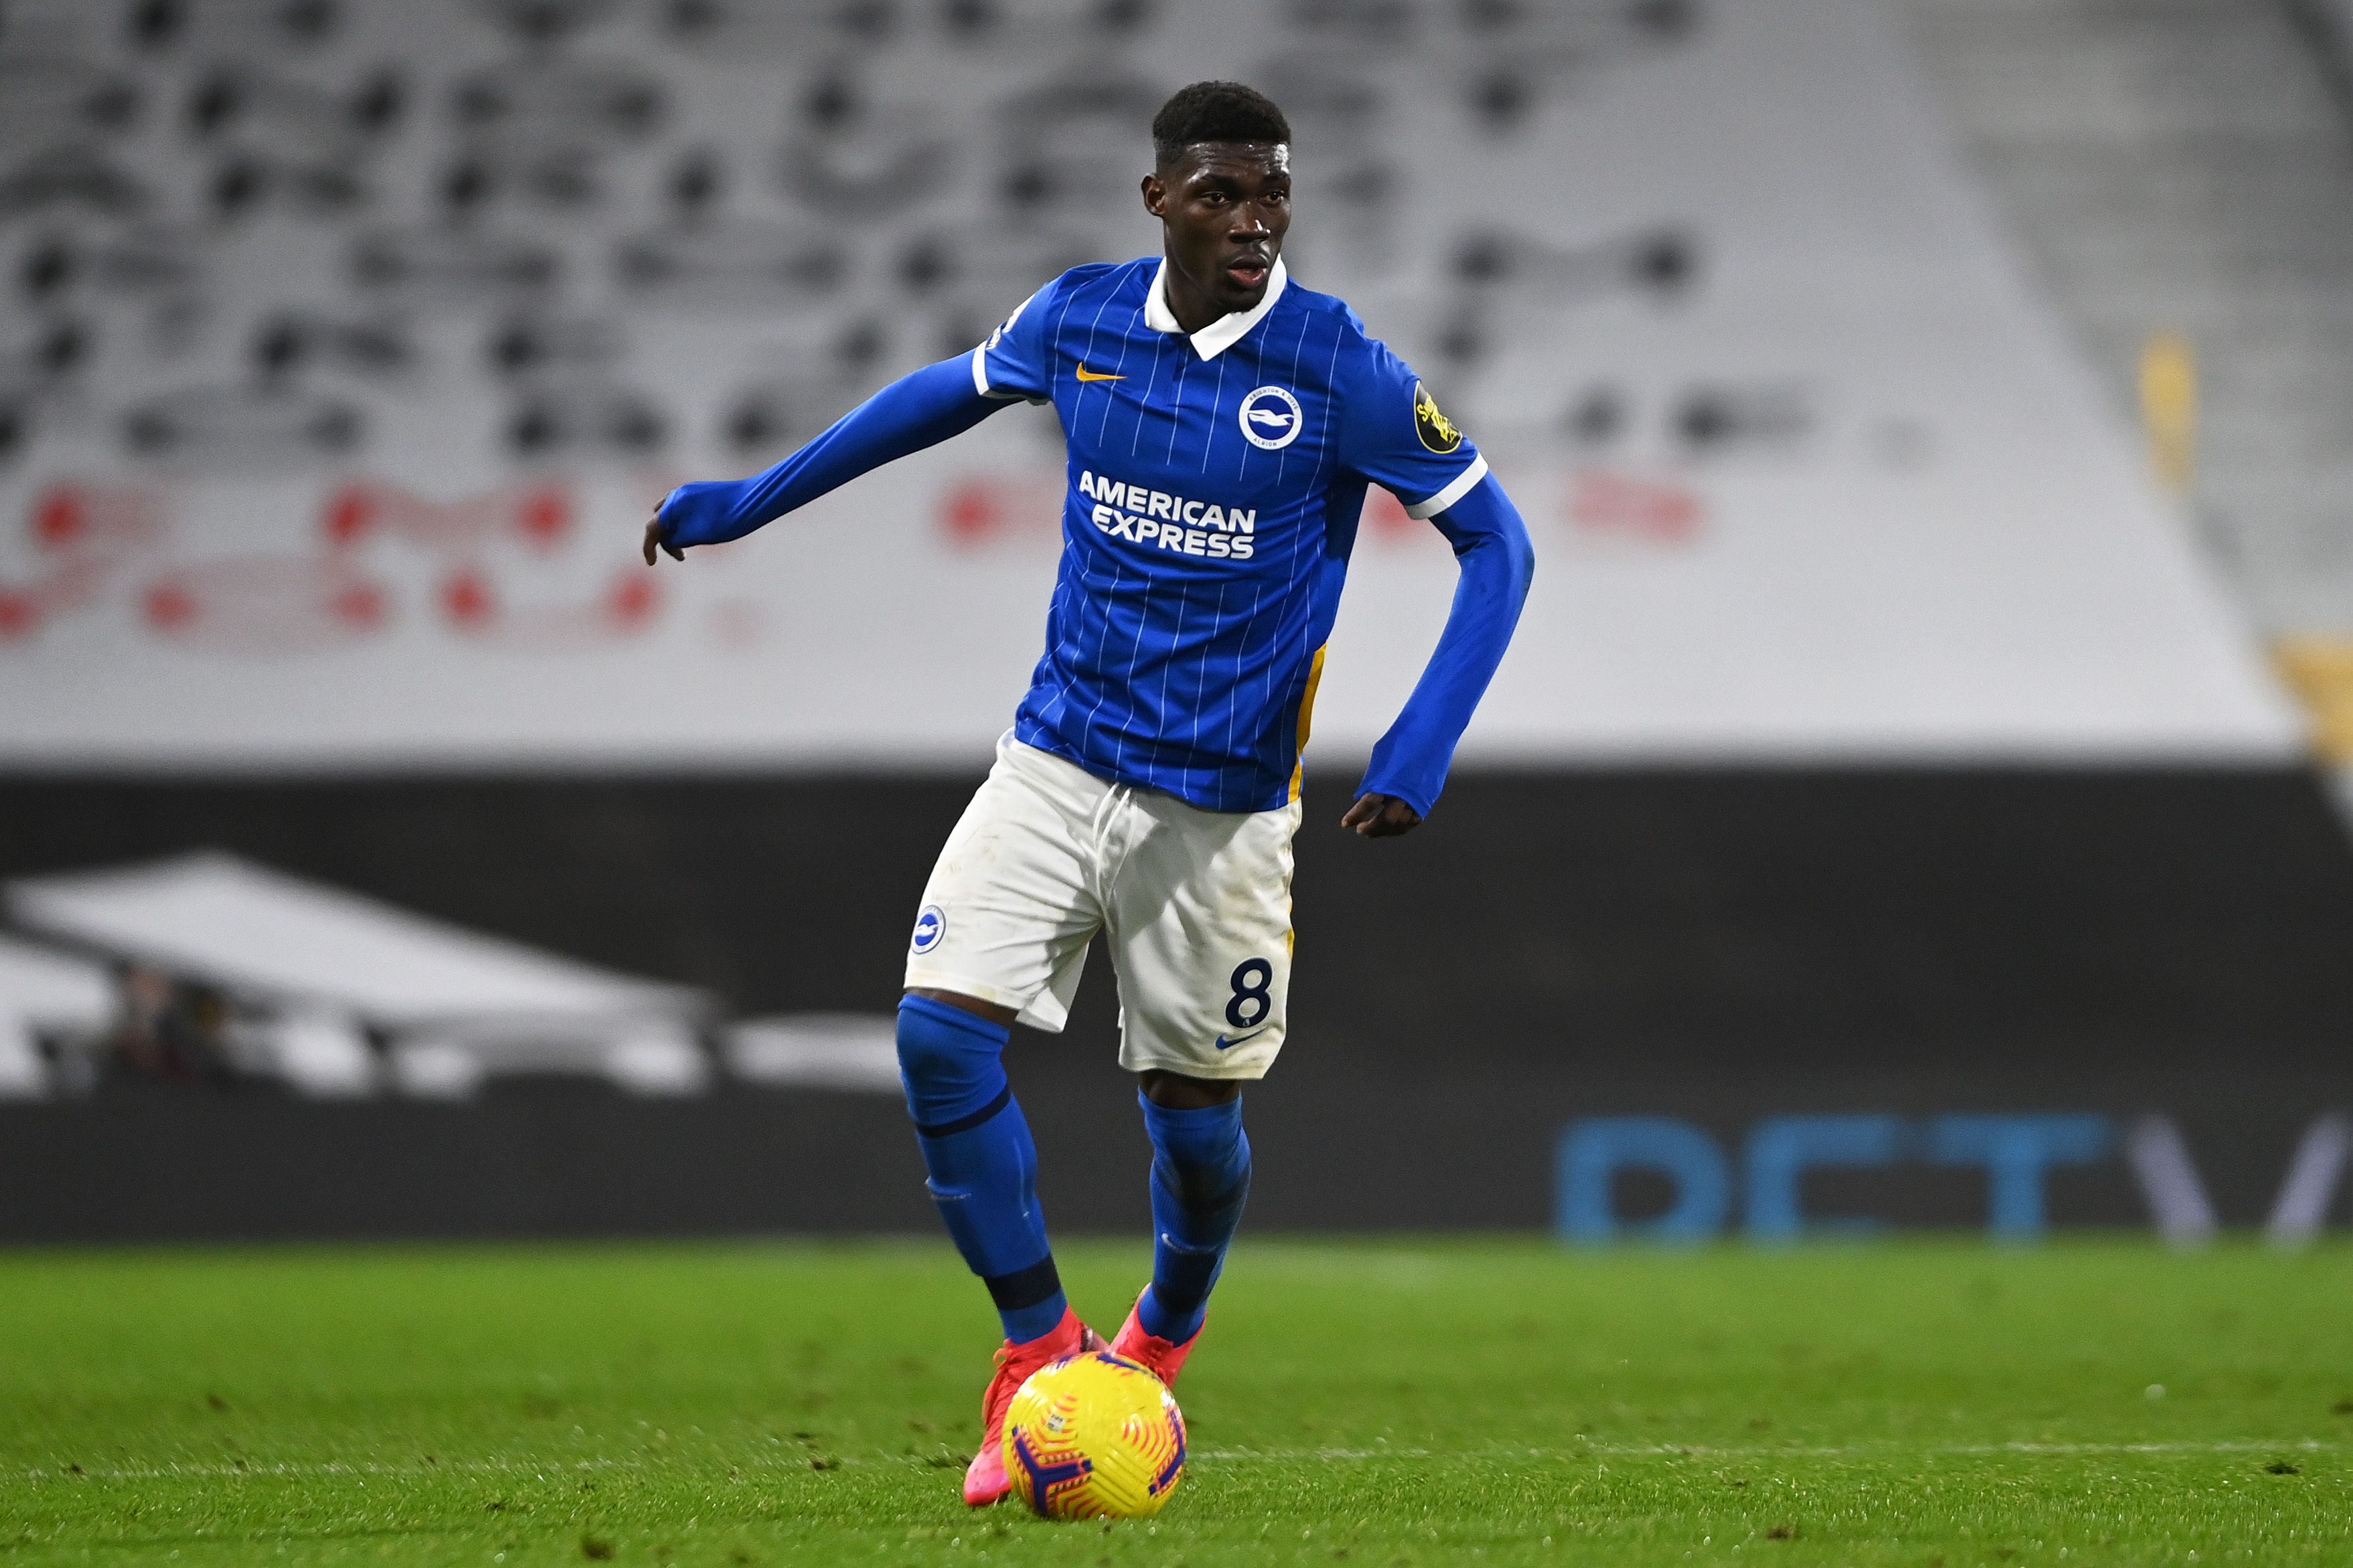 Brighton midfielder Yves Bissouma is on Arsenal's radar (Bissouma is in action in the picture)